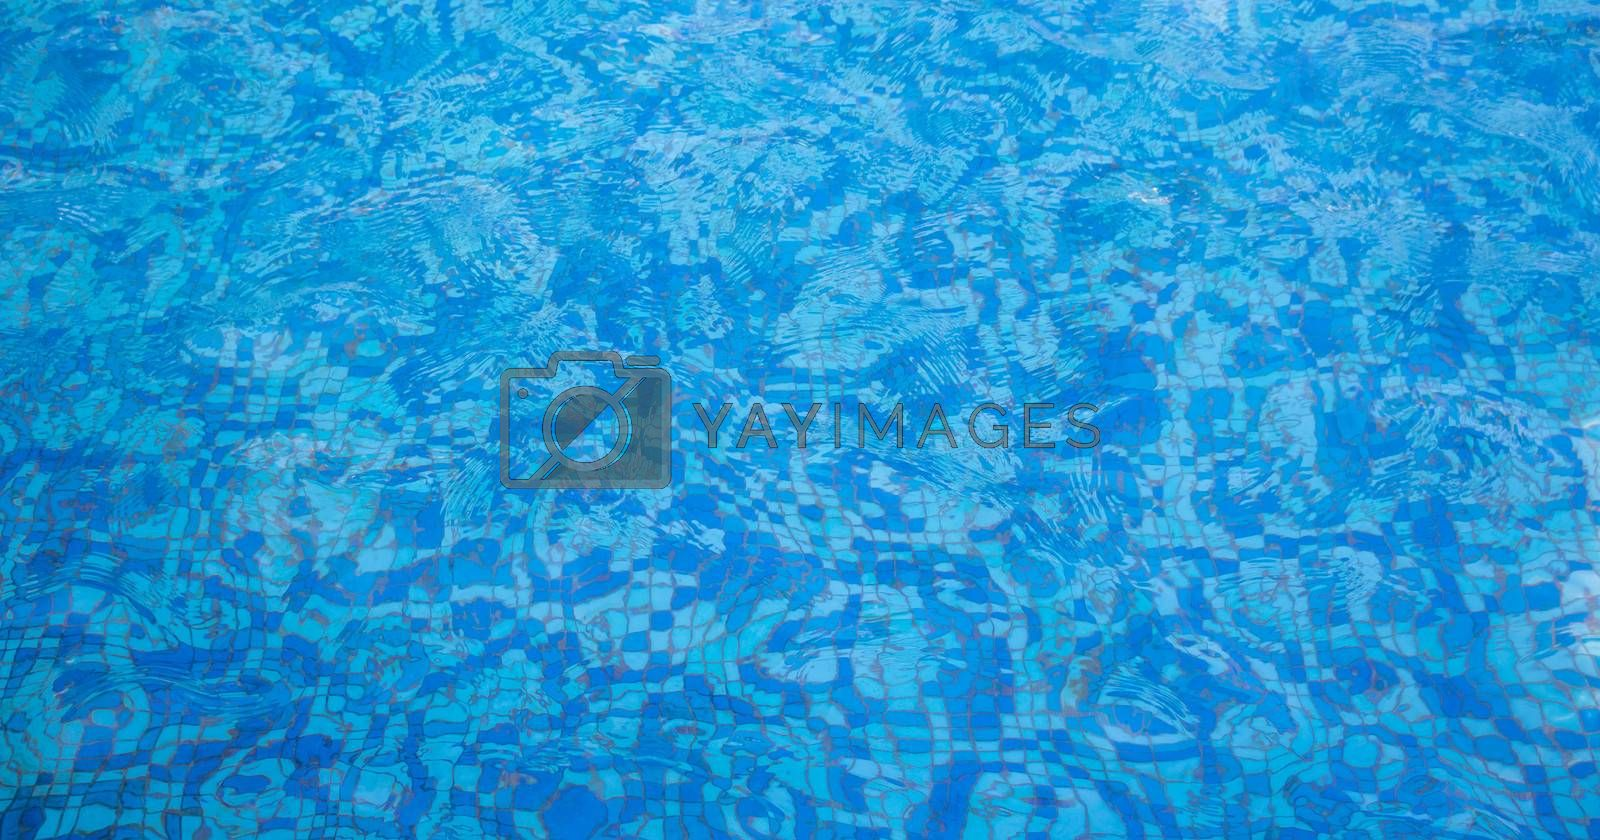 A pool with a mosaic bottom. Blue transparent water ripples. Space for text